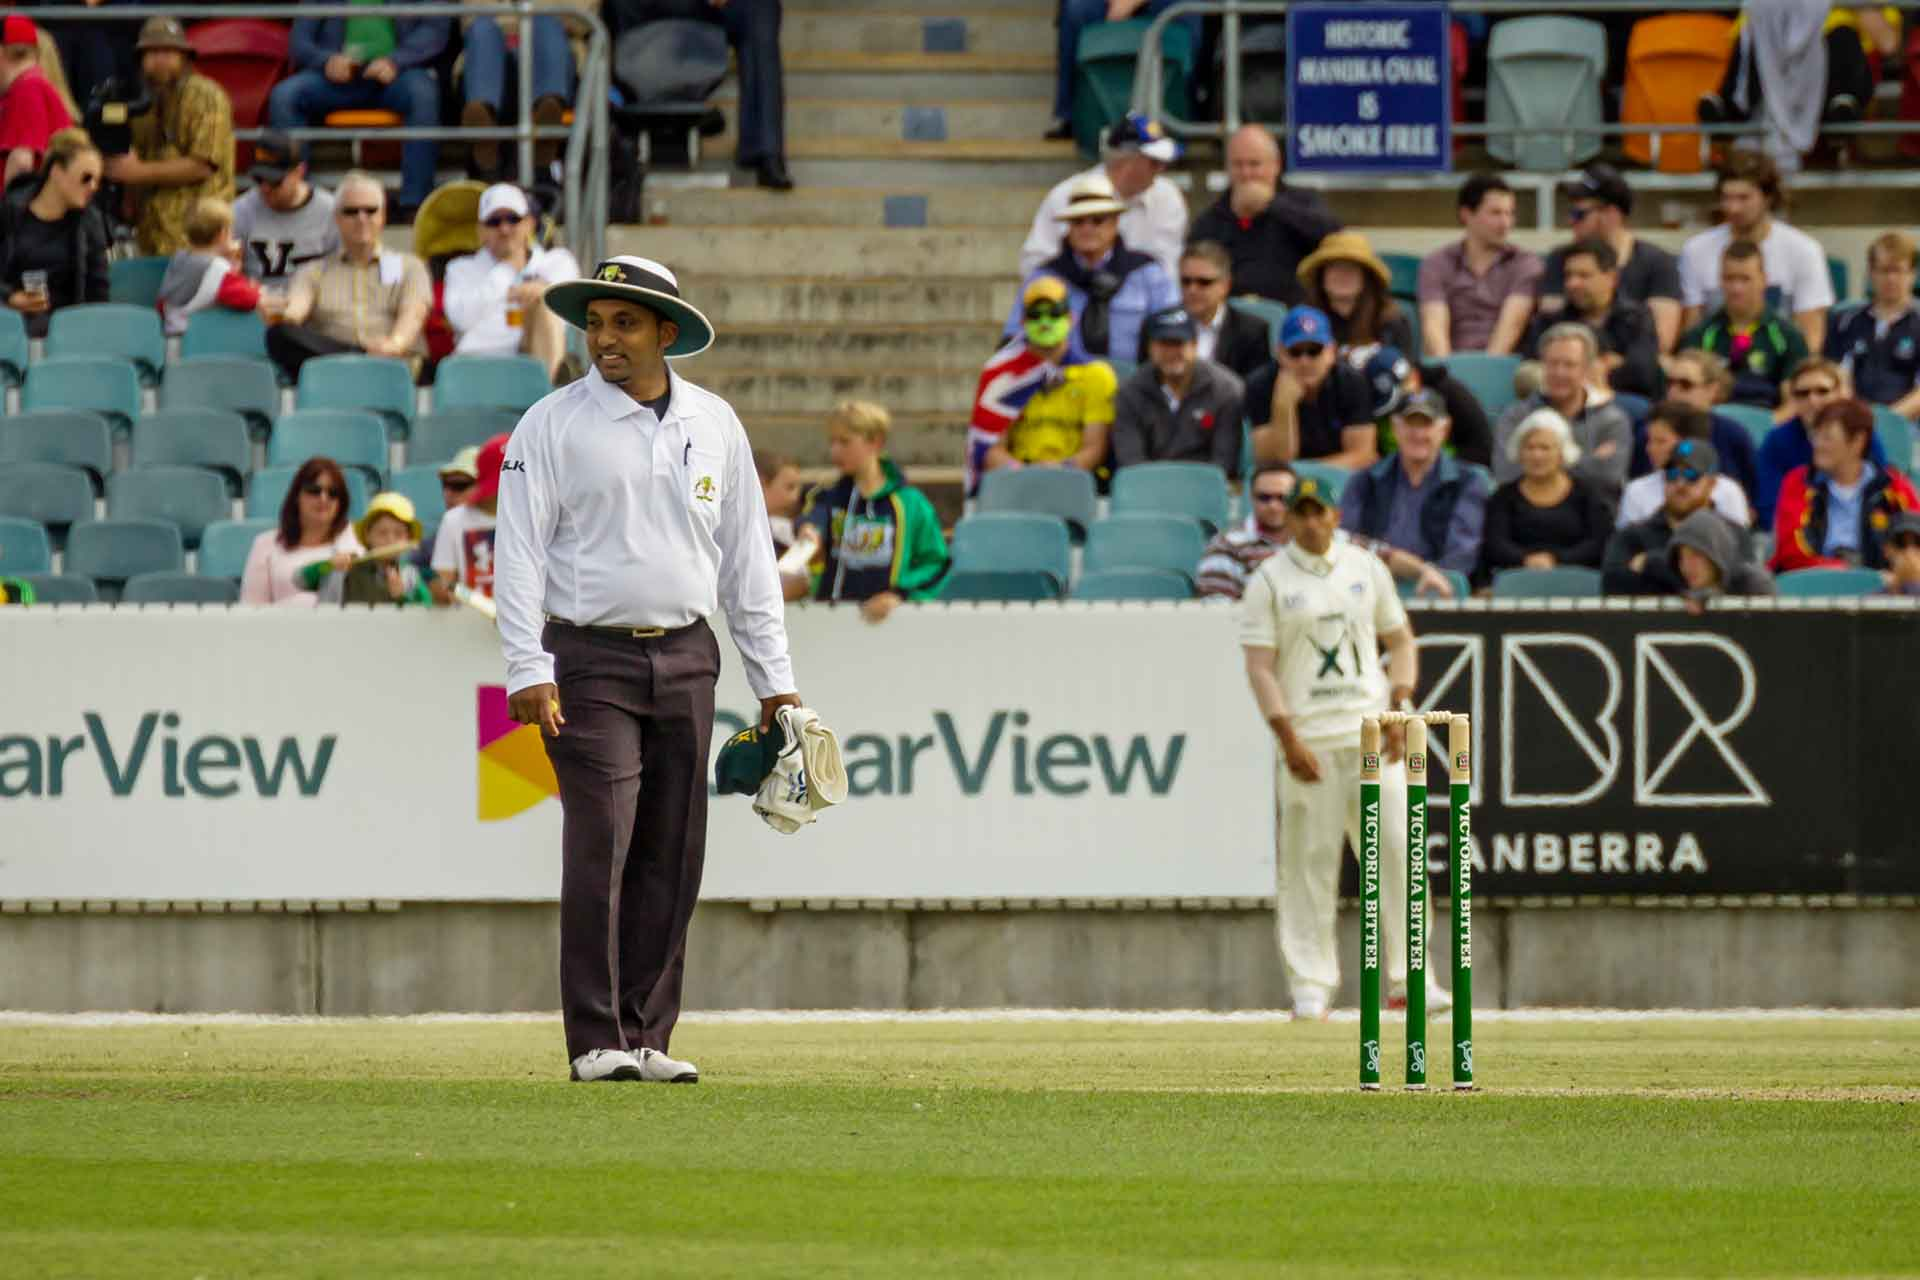 Pursuing a fortuitous dream – The umpiring experience